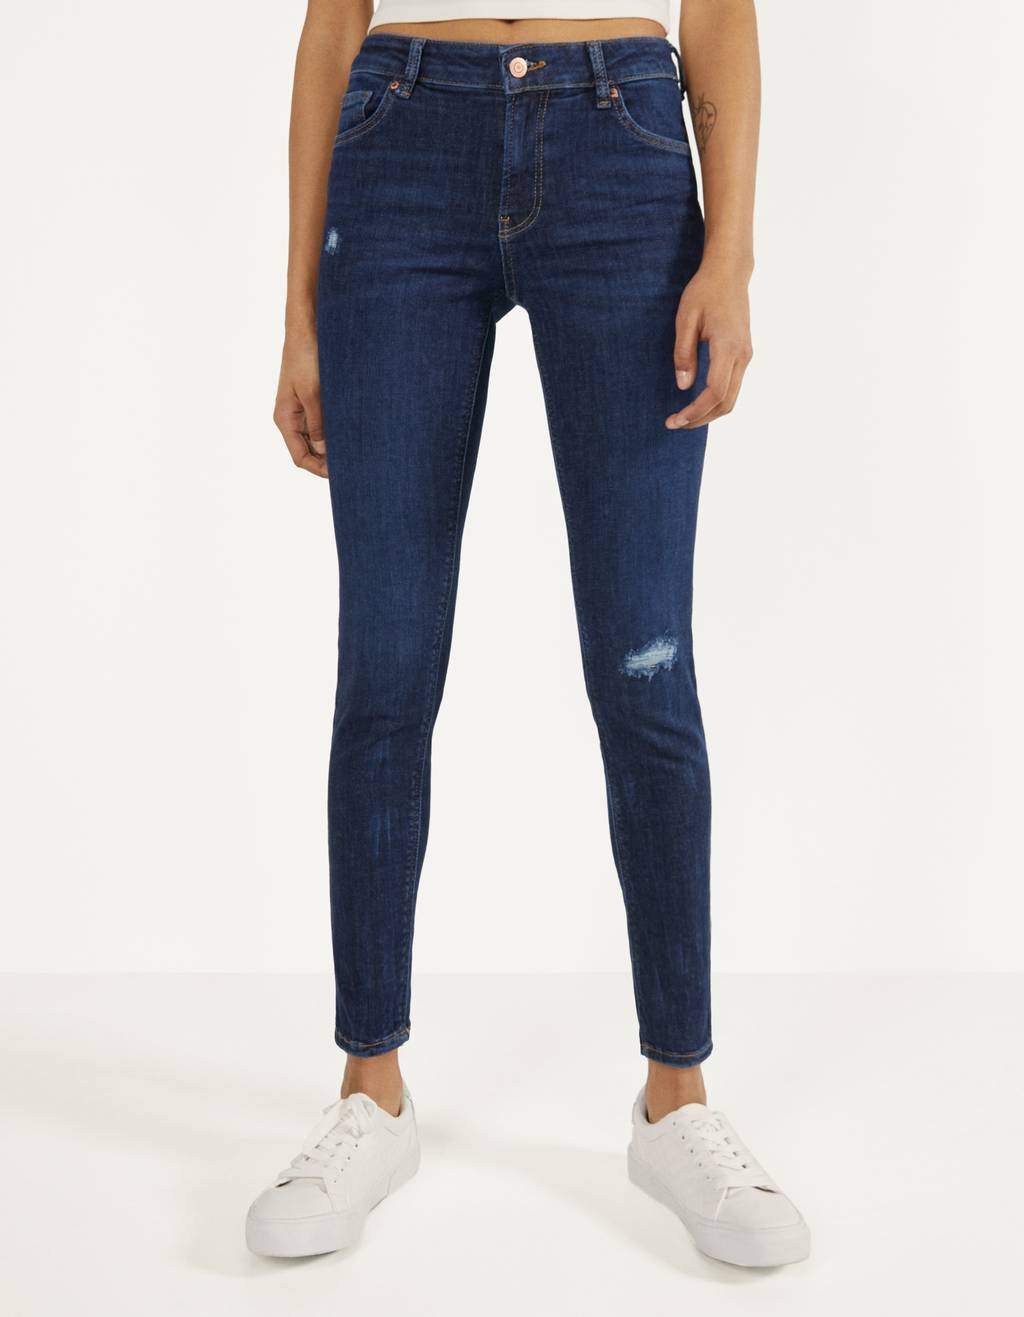 Mid-waist push-up jeans